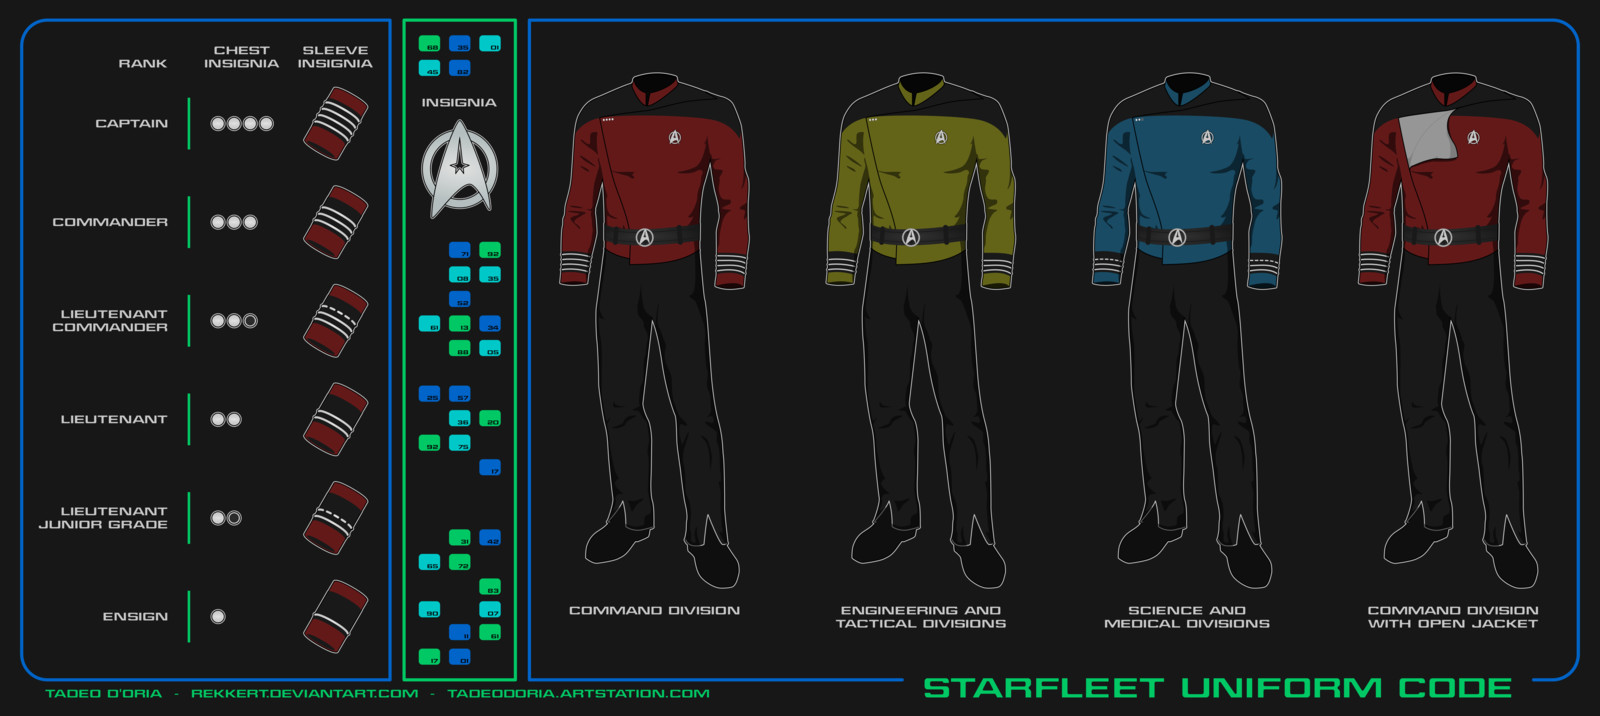 Star Trek Early 24th Century Uniforms